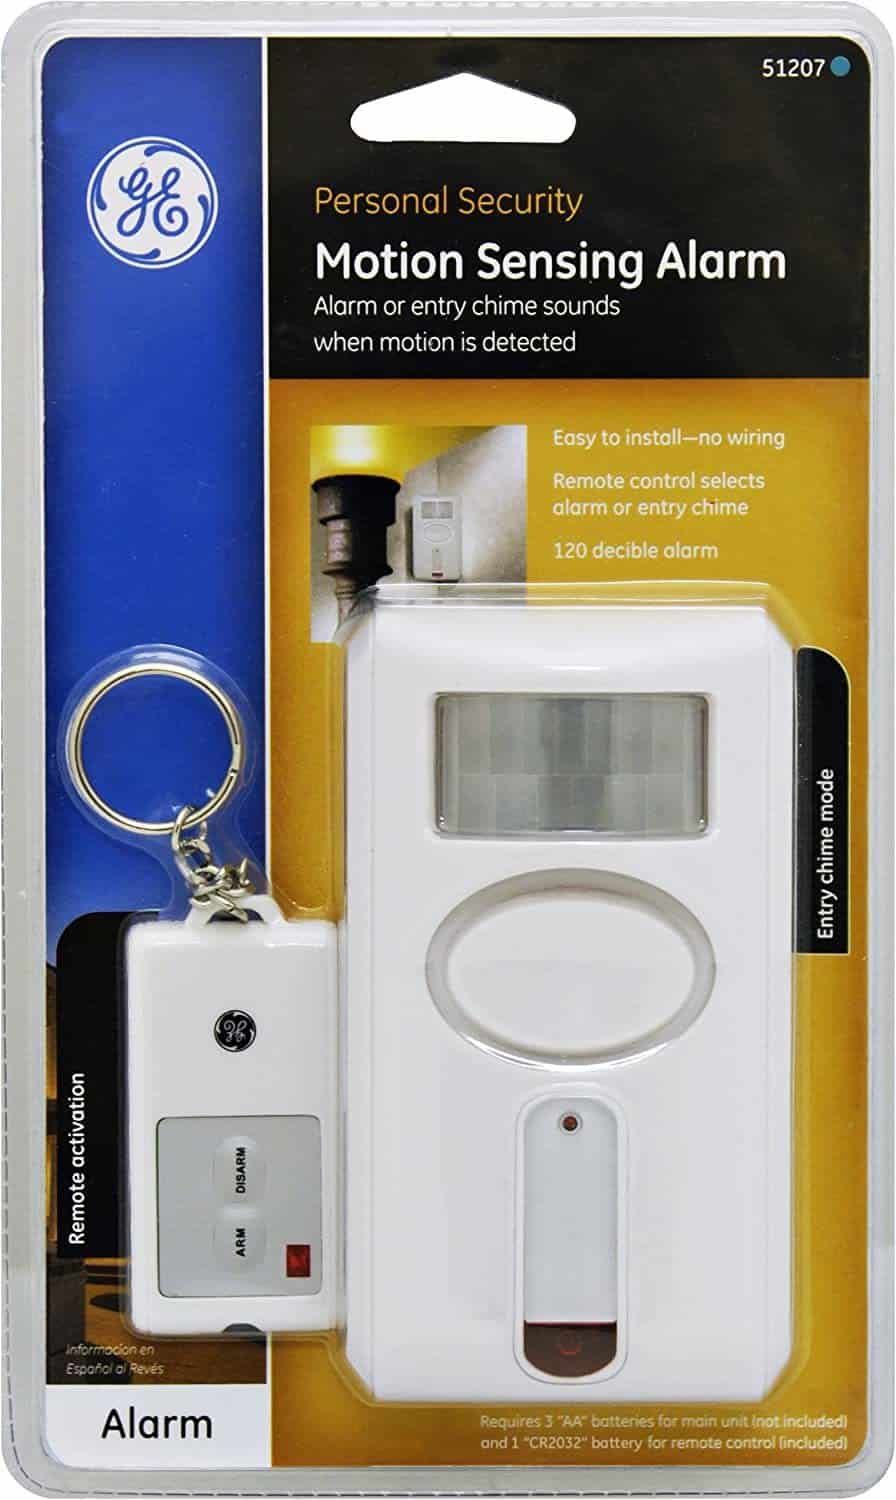 GE Personal Security Motion Sensor Alarm w/Remote Control